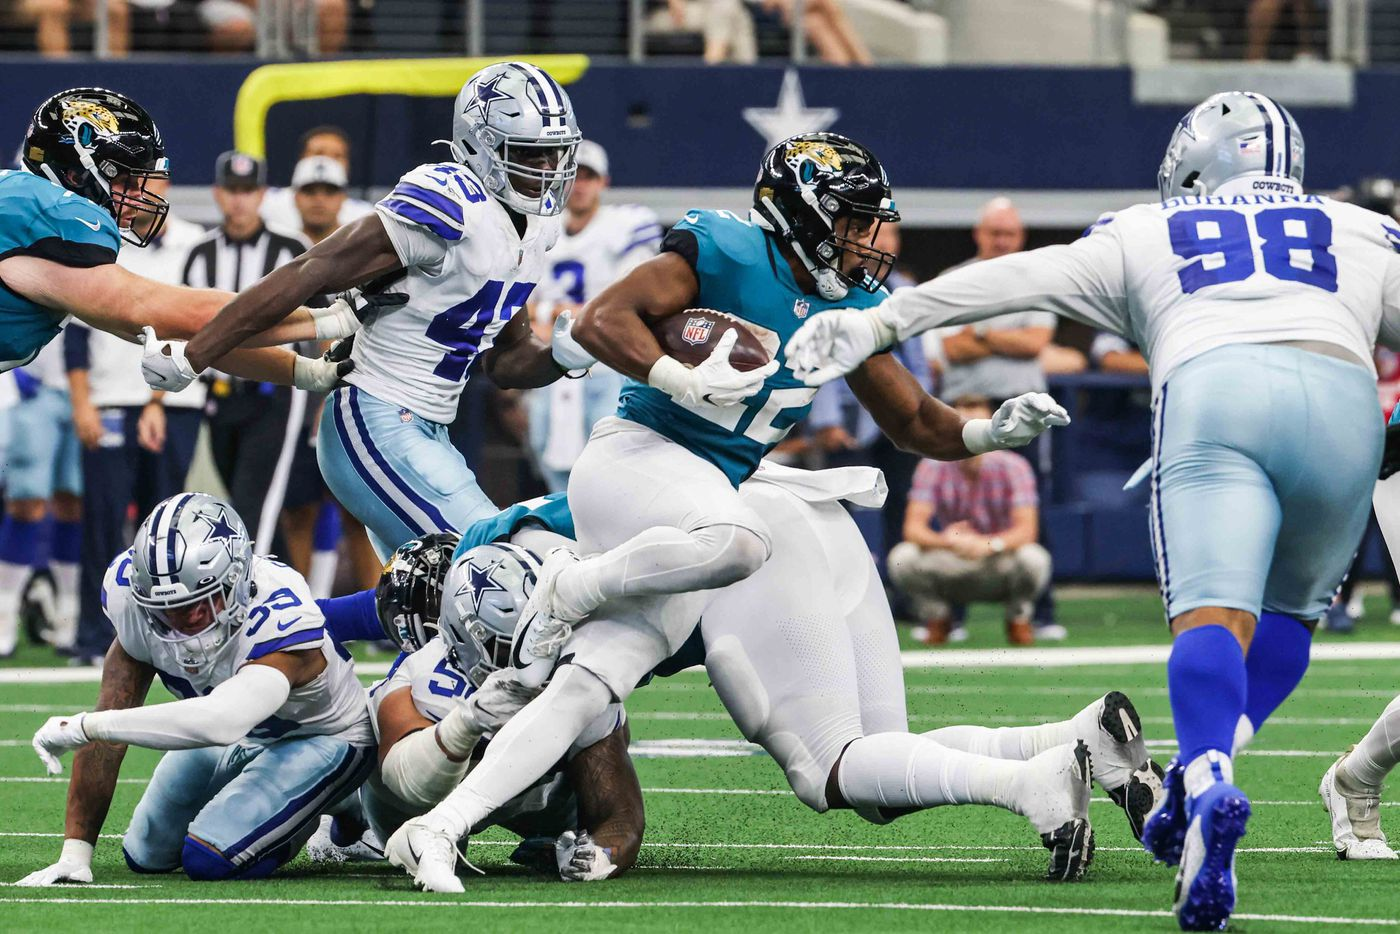 Jacksonville Jaguars running back Devine Ozigbo, 22, runs with the football during a preseason game at AT&T stadium in Arlington on Sunday, August 29, 2021. (Lola Gomez/The Dallas Morning News)